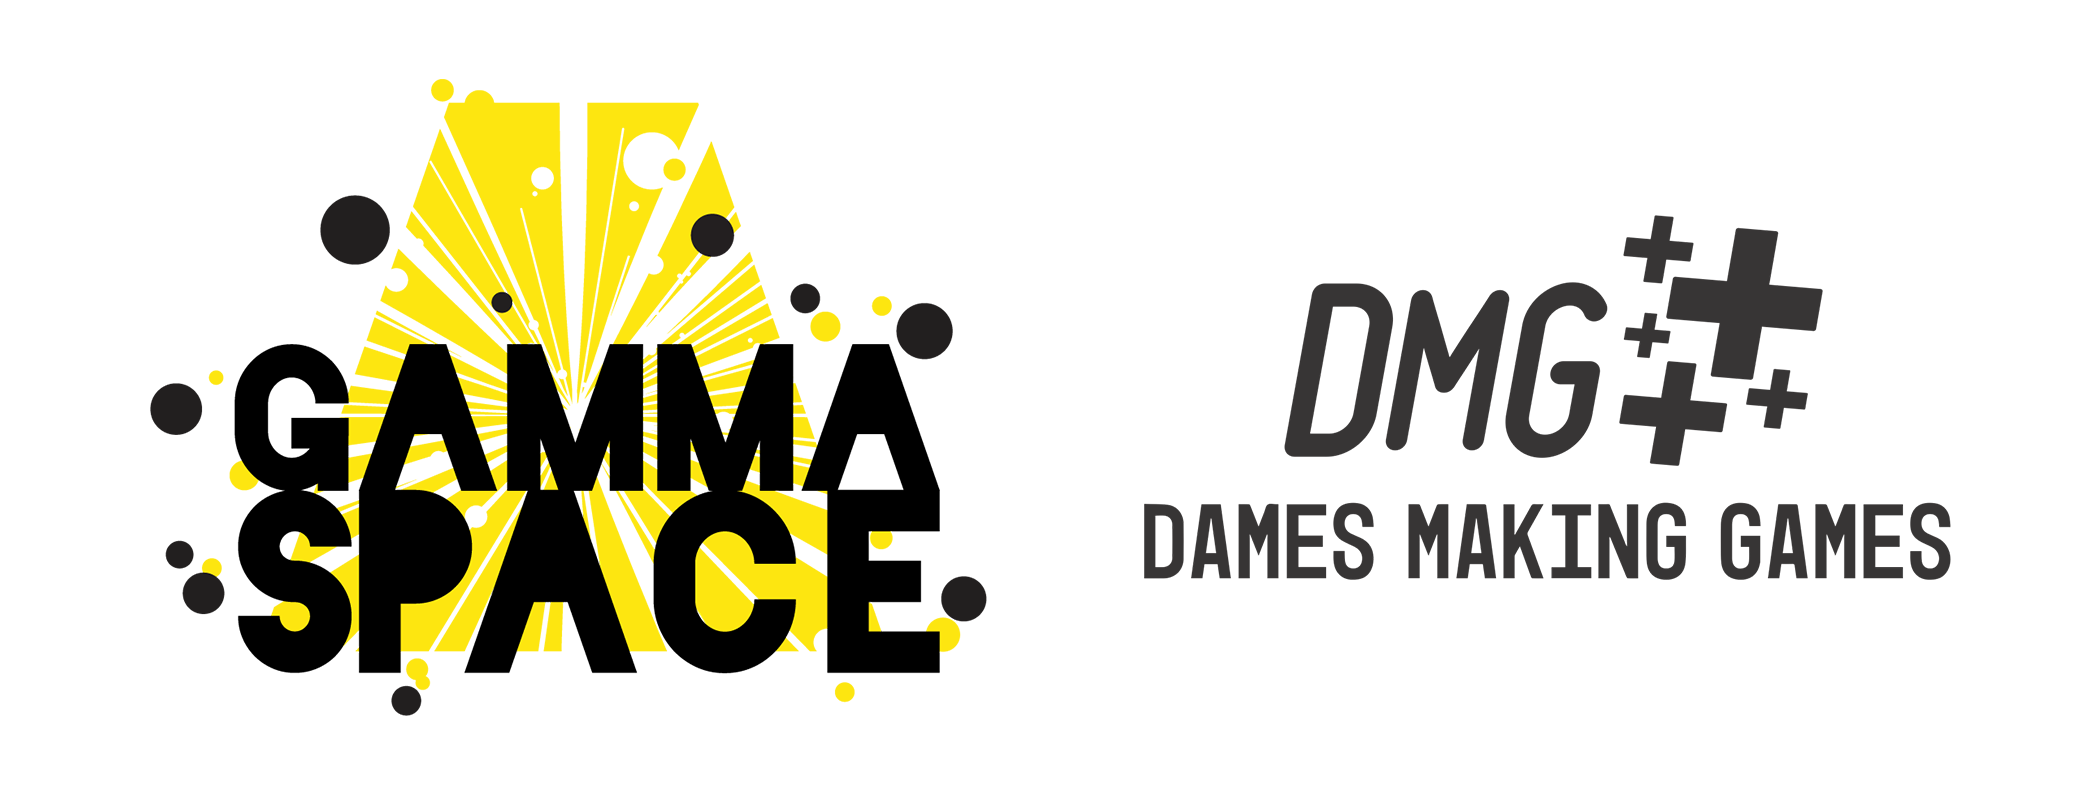 Gamma Space and Dames Making Games